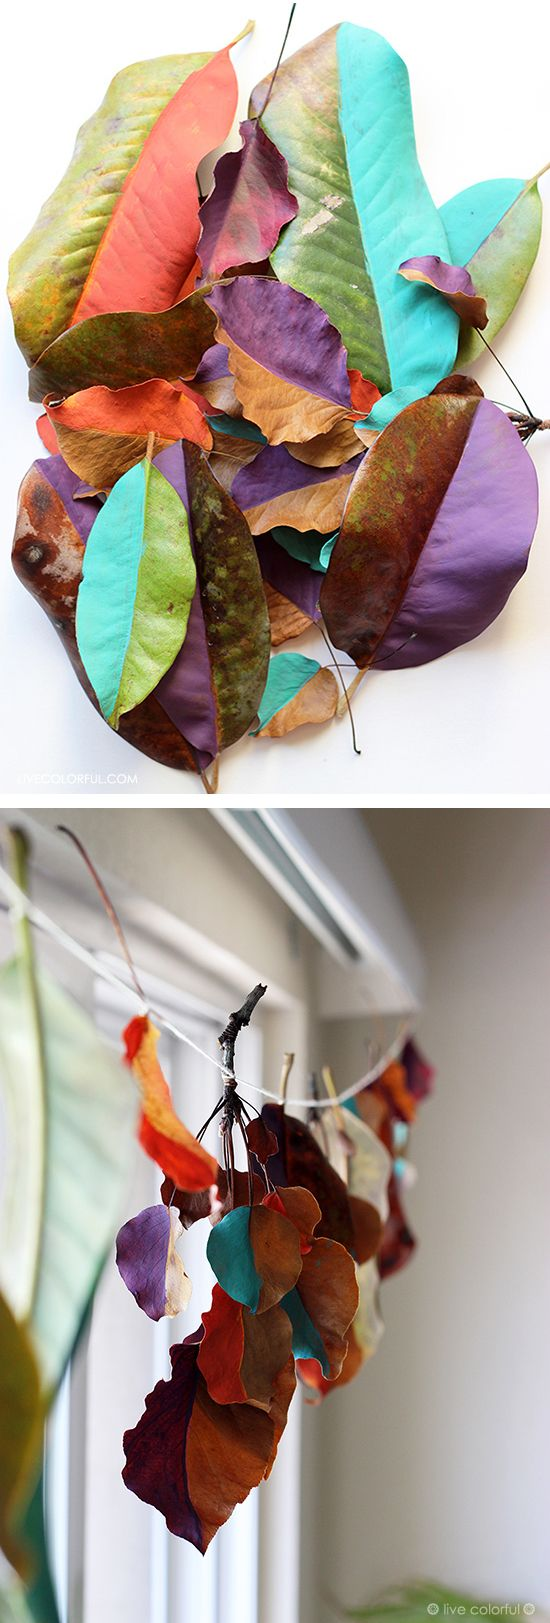 DIY: Painted Leaf Garland. Two easy steps and you can recreate this simple and original idea to decorate your house this fall! | LiveColorful.com